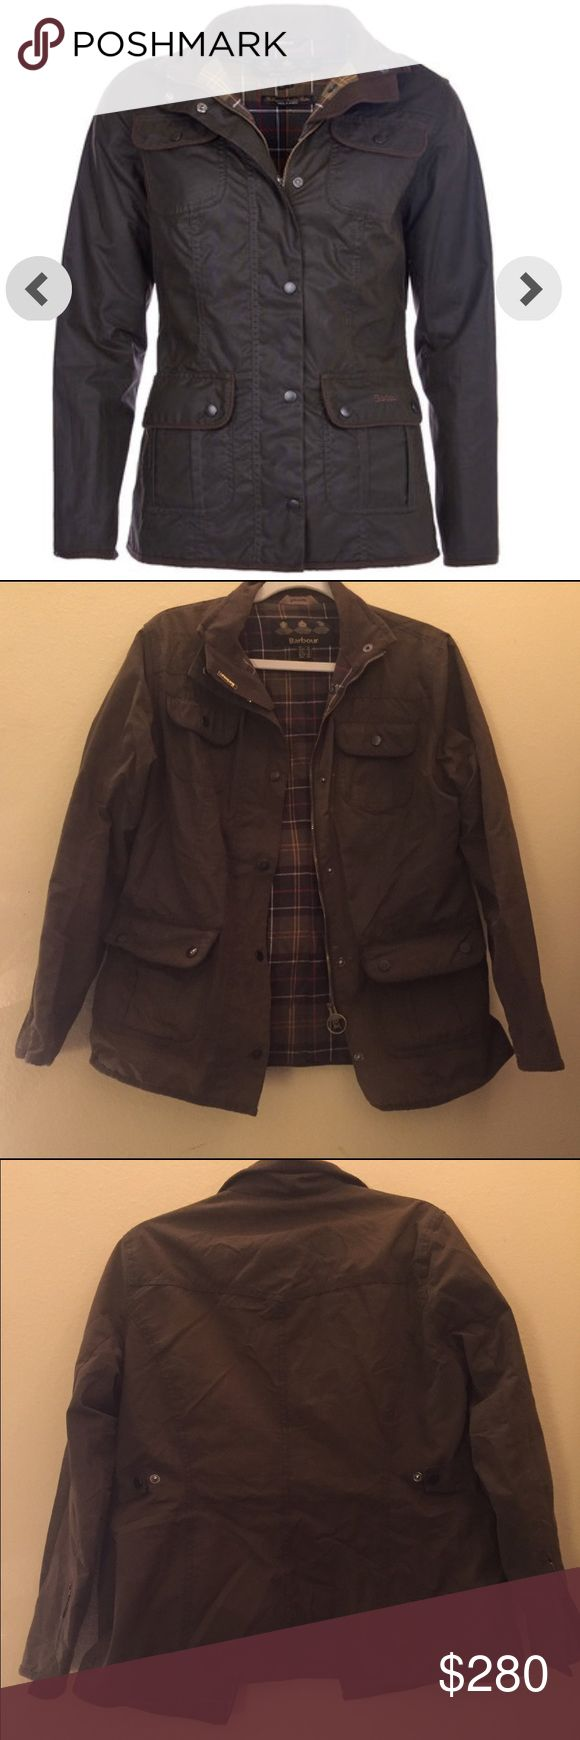 Selling this Barbour Women's Waxed Cotton Utility Jacket on Poshmark! My username is: cat_harman. #shopmycloset #poshmark #fashion #shopping #style #forsale #Barbour #Jackets & Blazers